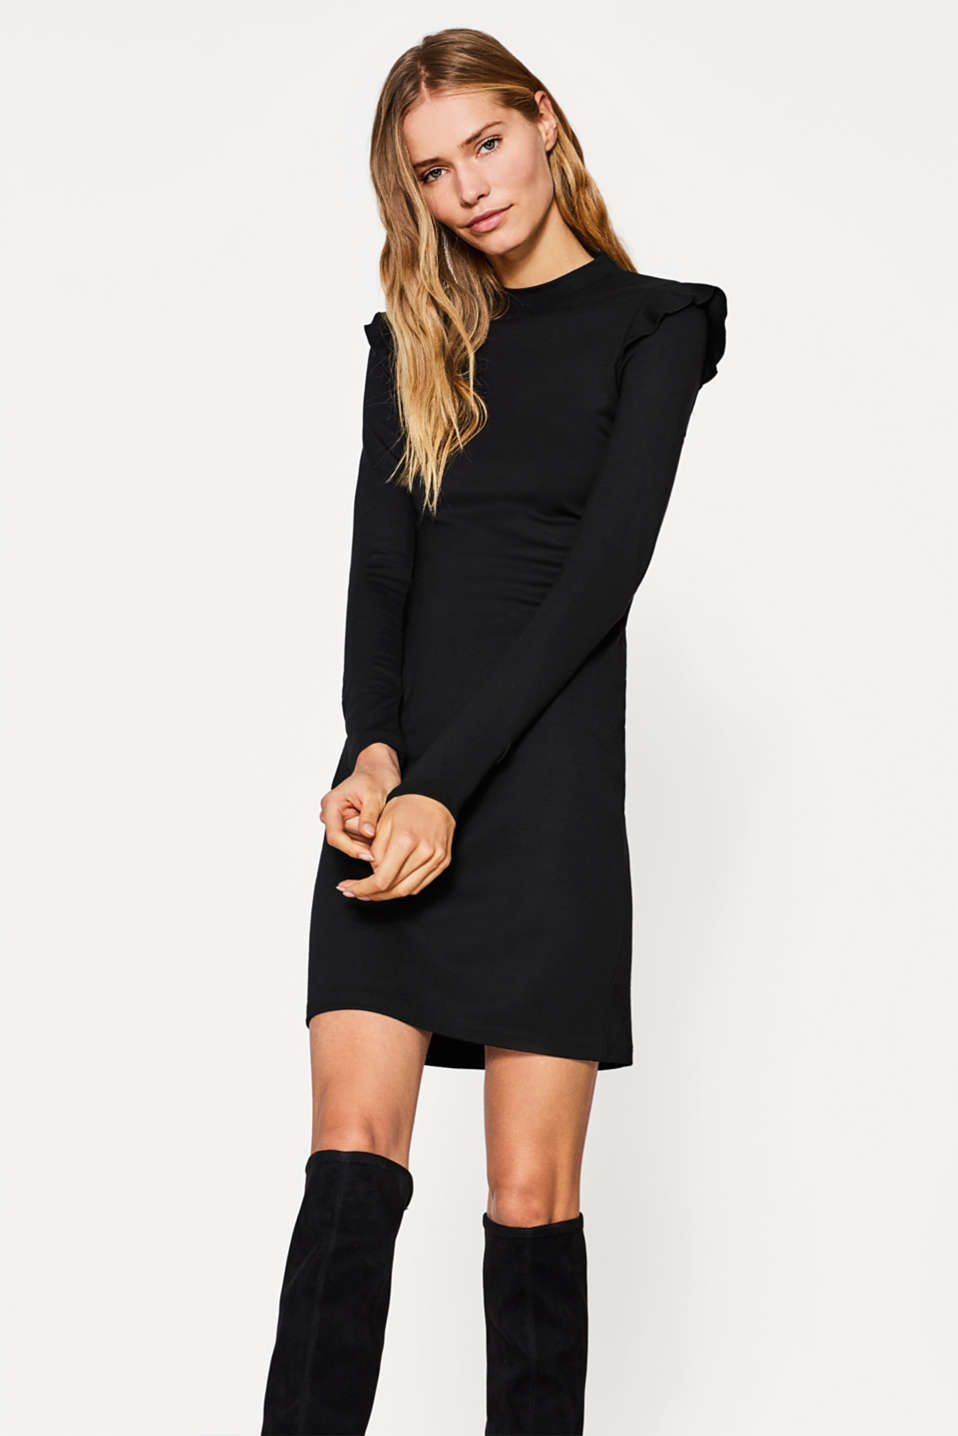 Esprit - Heavy jersey dress with frills